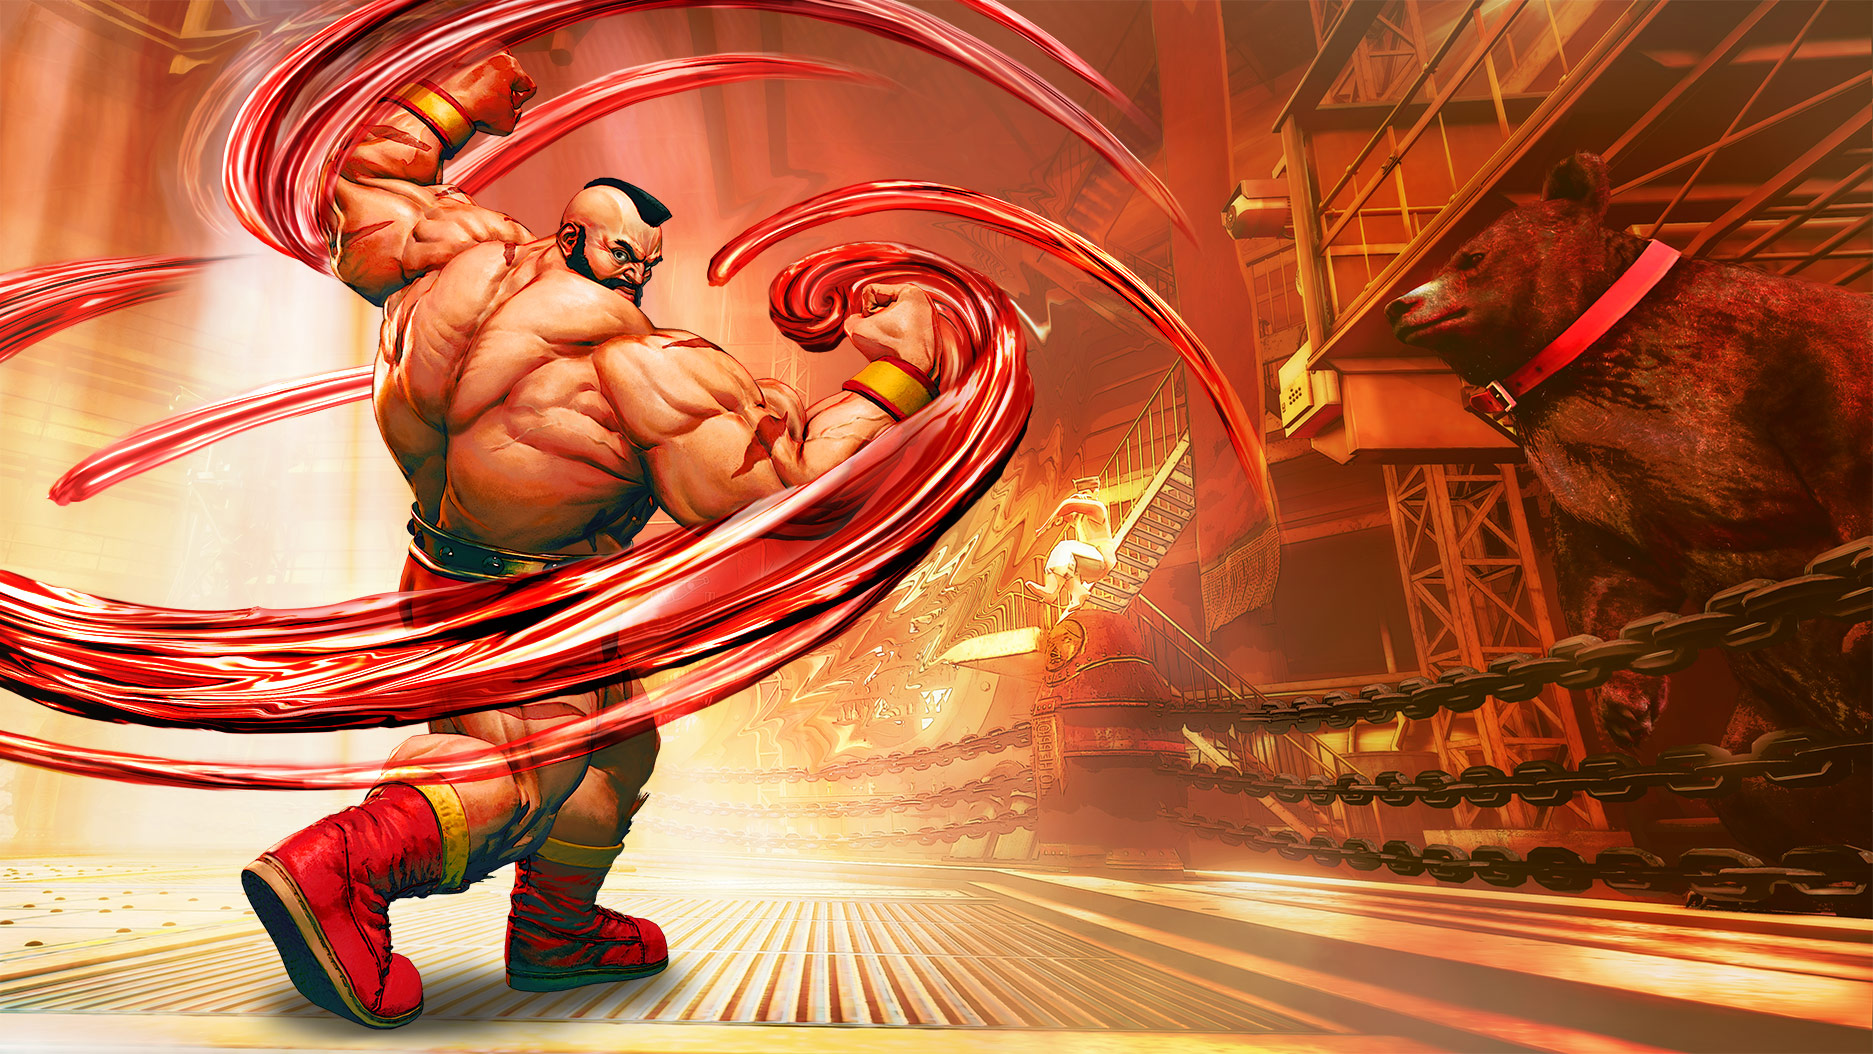 Zangief returns in Street Fighter 5 12 out of 18 image gallery